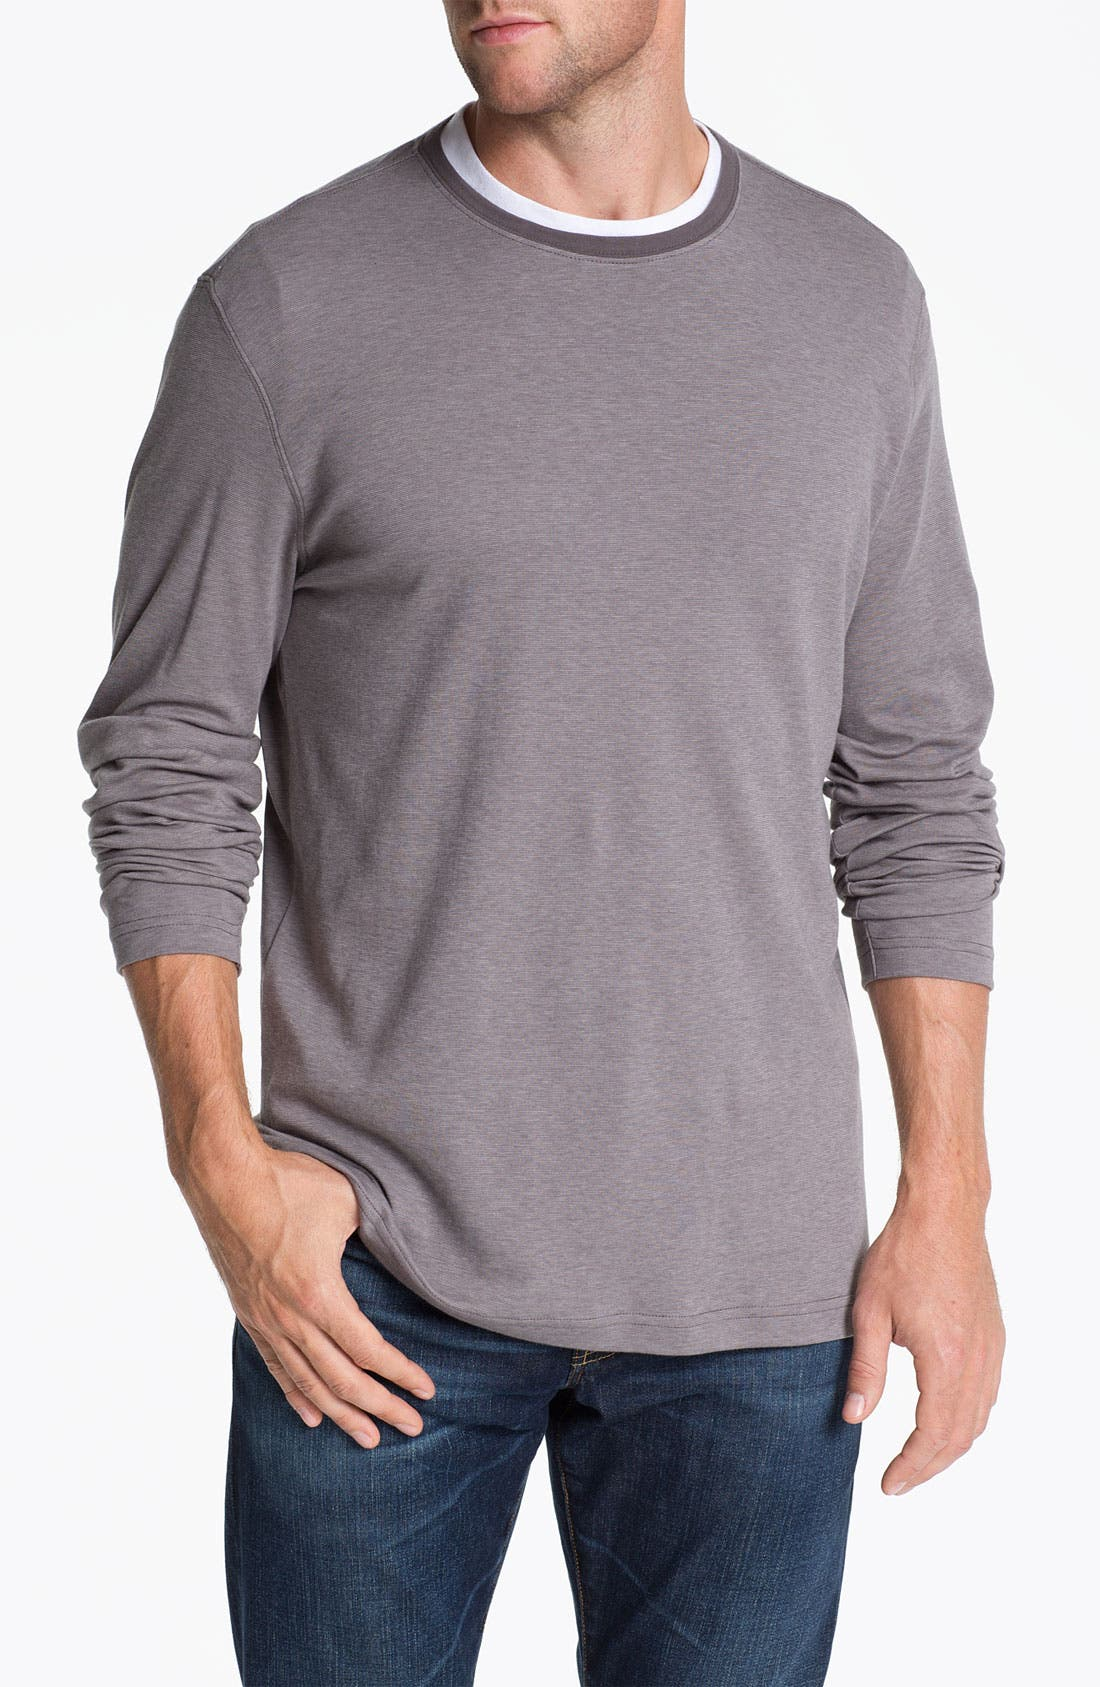 Alternate Image 1 Selected - Robert Barakett 'Connor' Crewneck T-Shirt